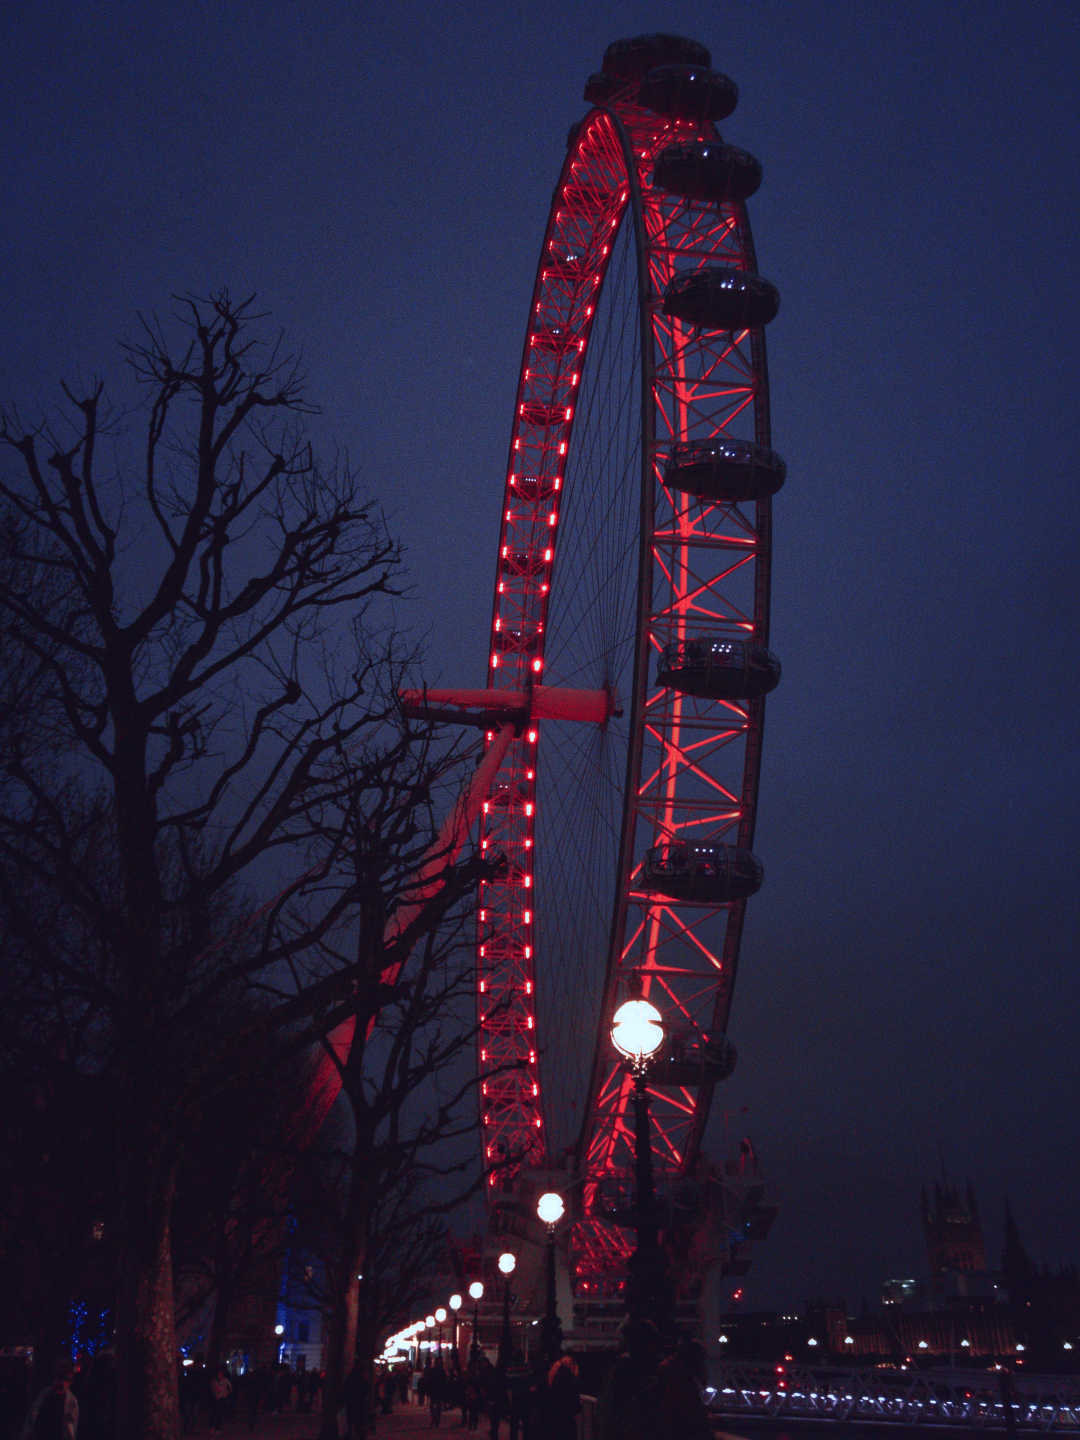 London Eye, photographed on 18 March 2016